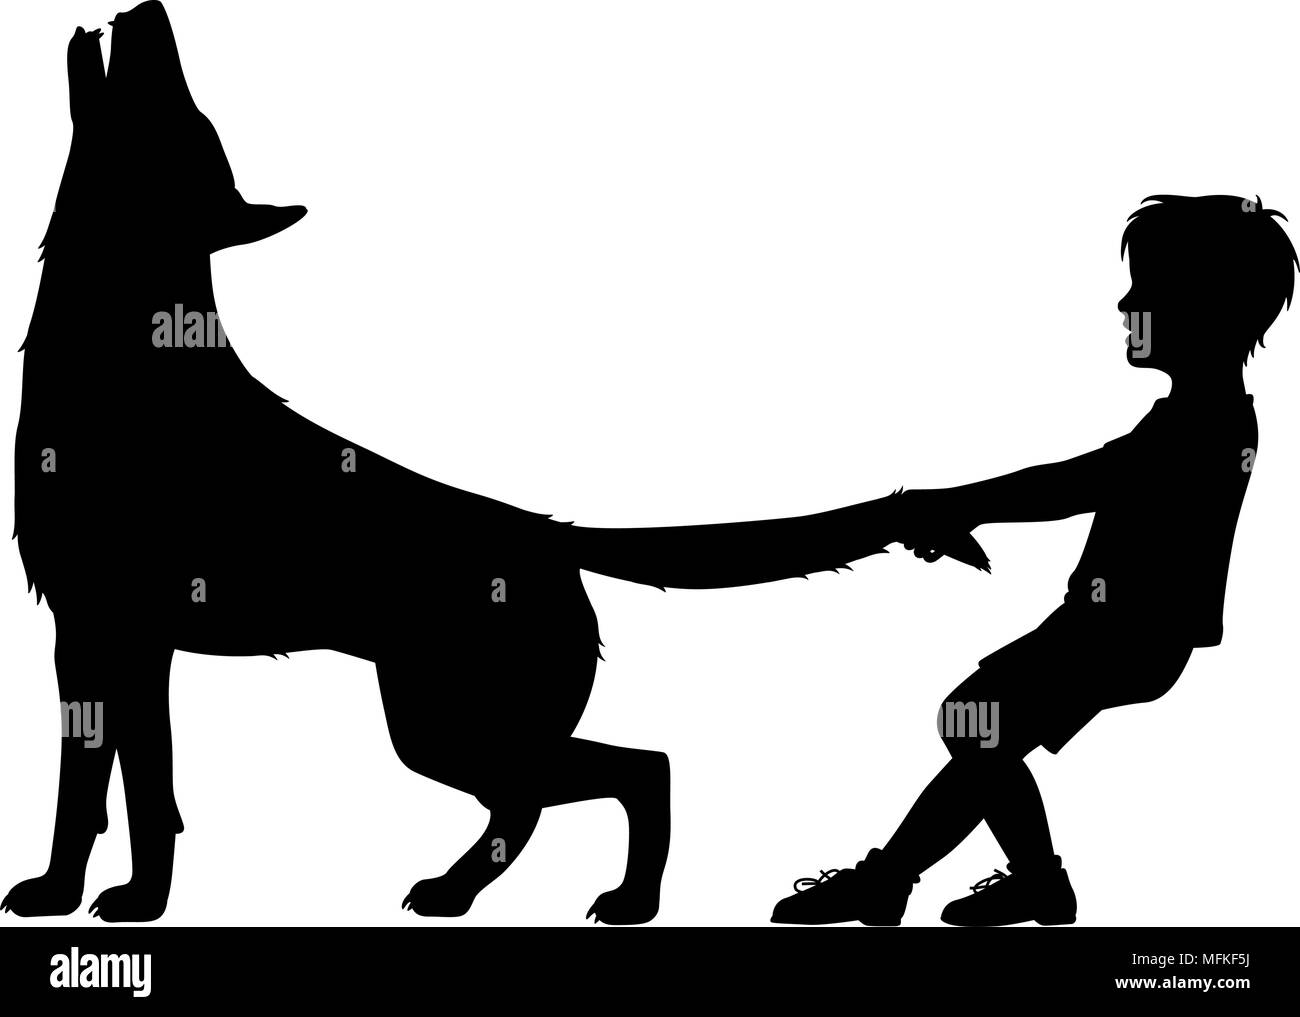 Editable vector silhouette illustration of a boy pulling the tail of a howling wolf with figures as separate objects Stock Vector